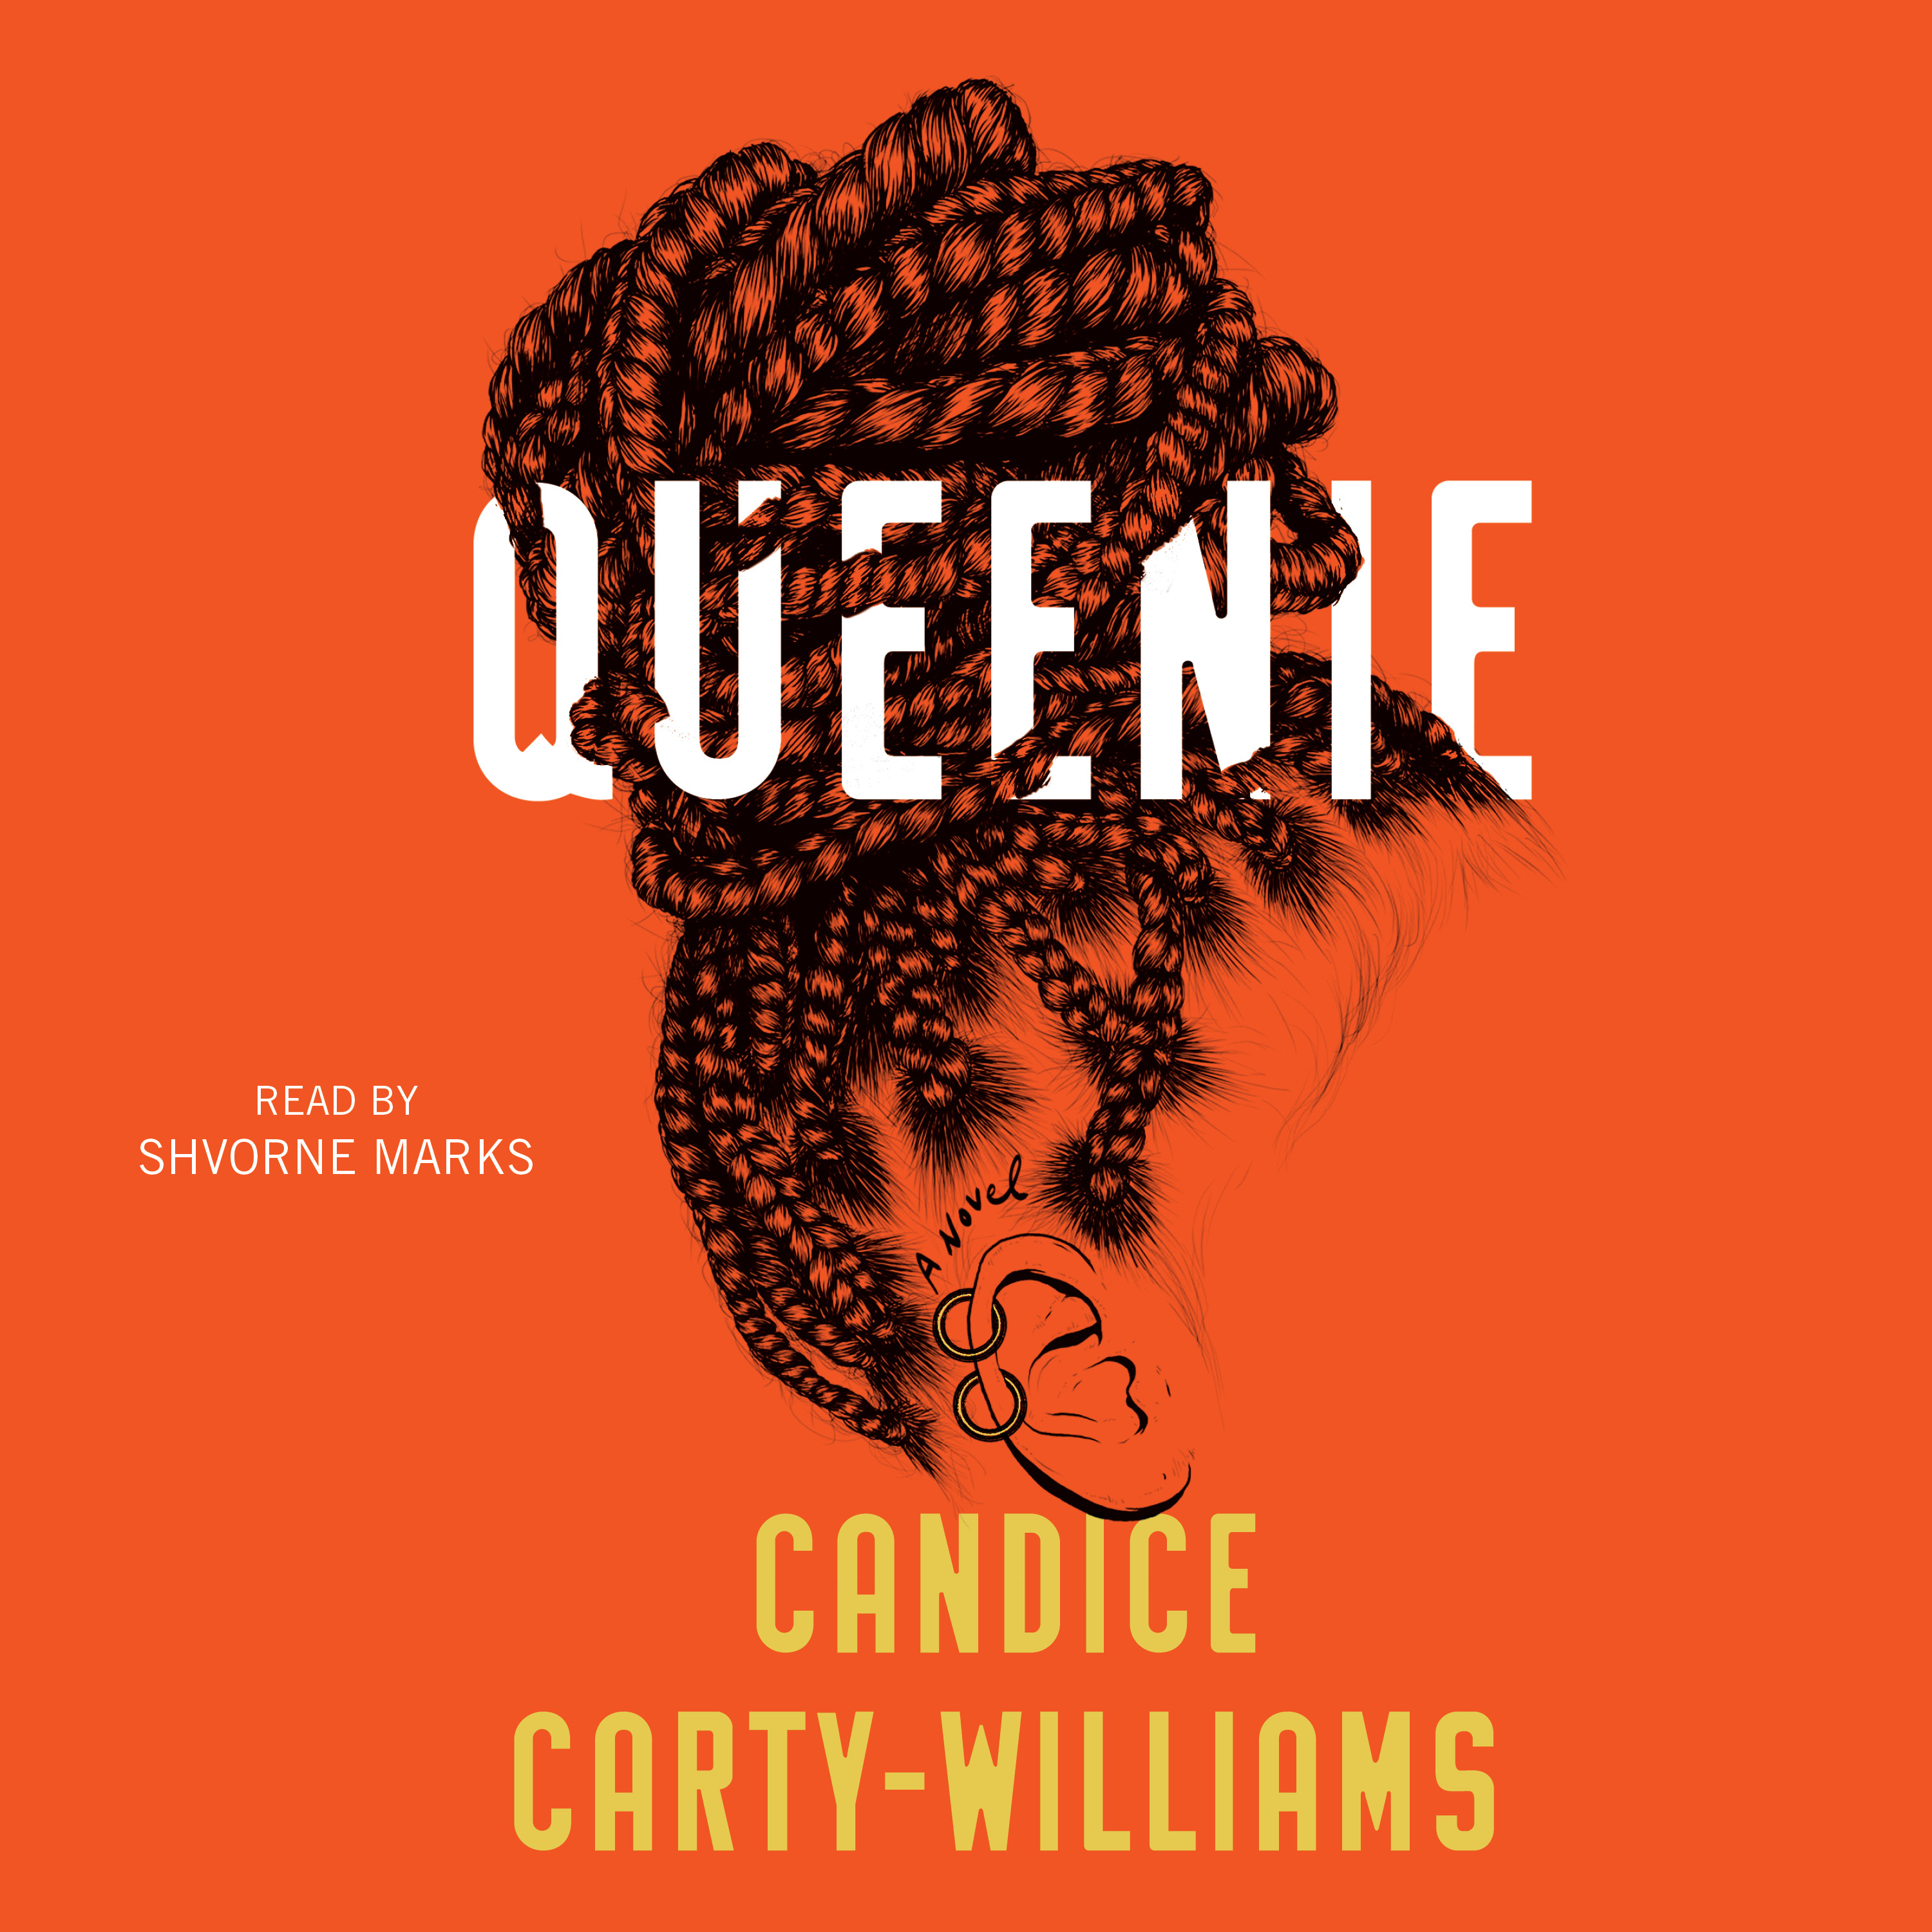 Queenie Audiobook by Candice Carty-Williams, Shvorne Marks | Official  Publisher Page | Simon & Schuster